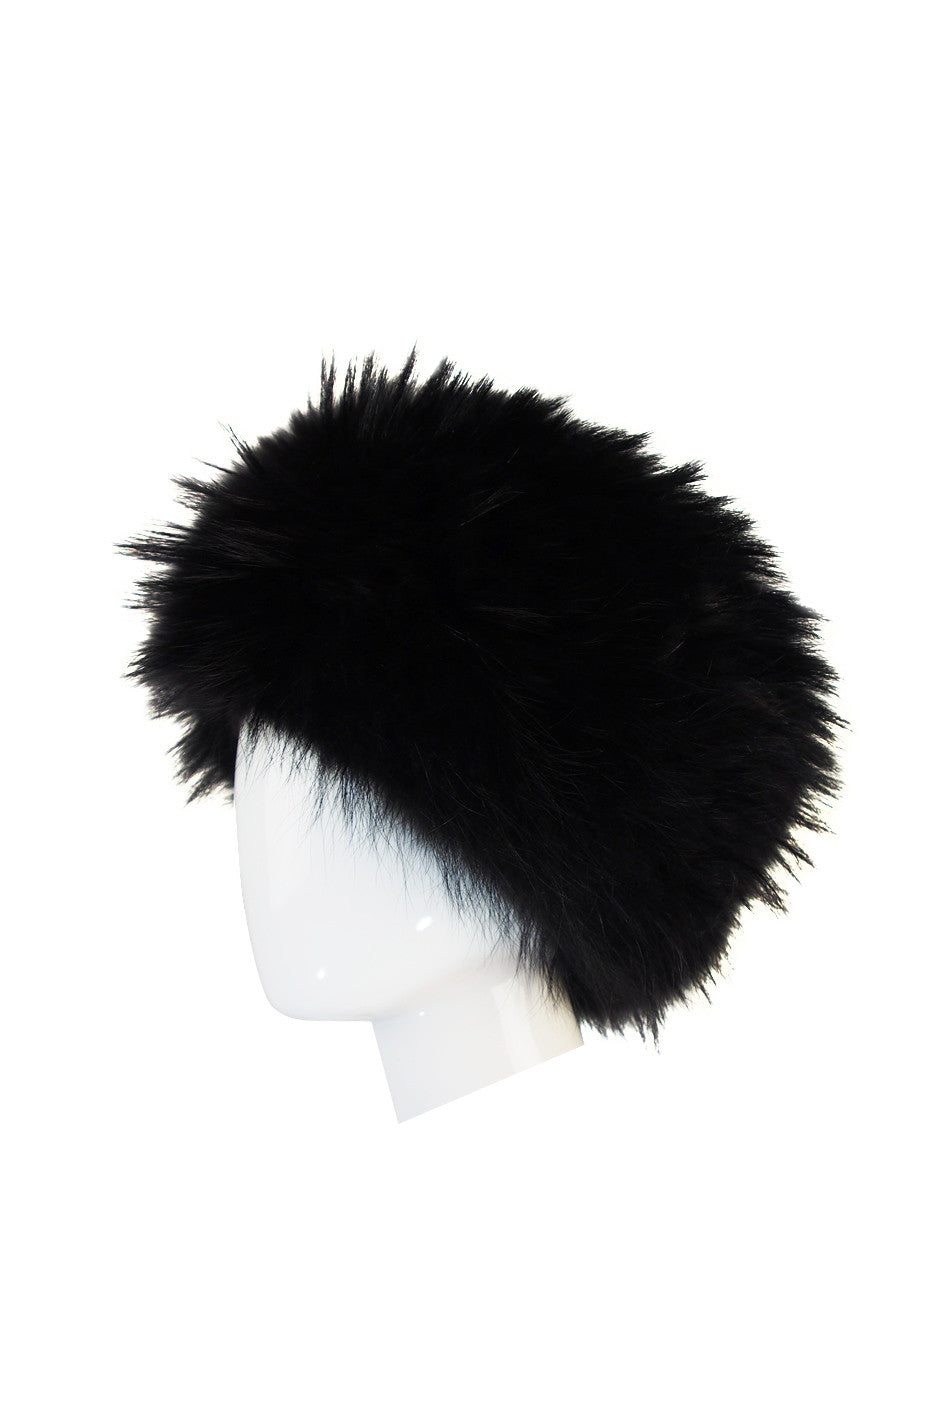 ... 1990s Statement Making Burberry Black Fur Hat ... 643b2a26a99